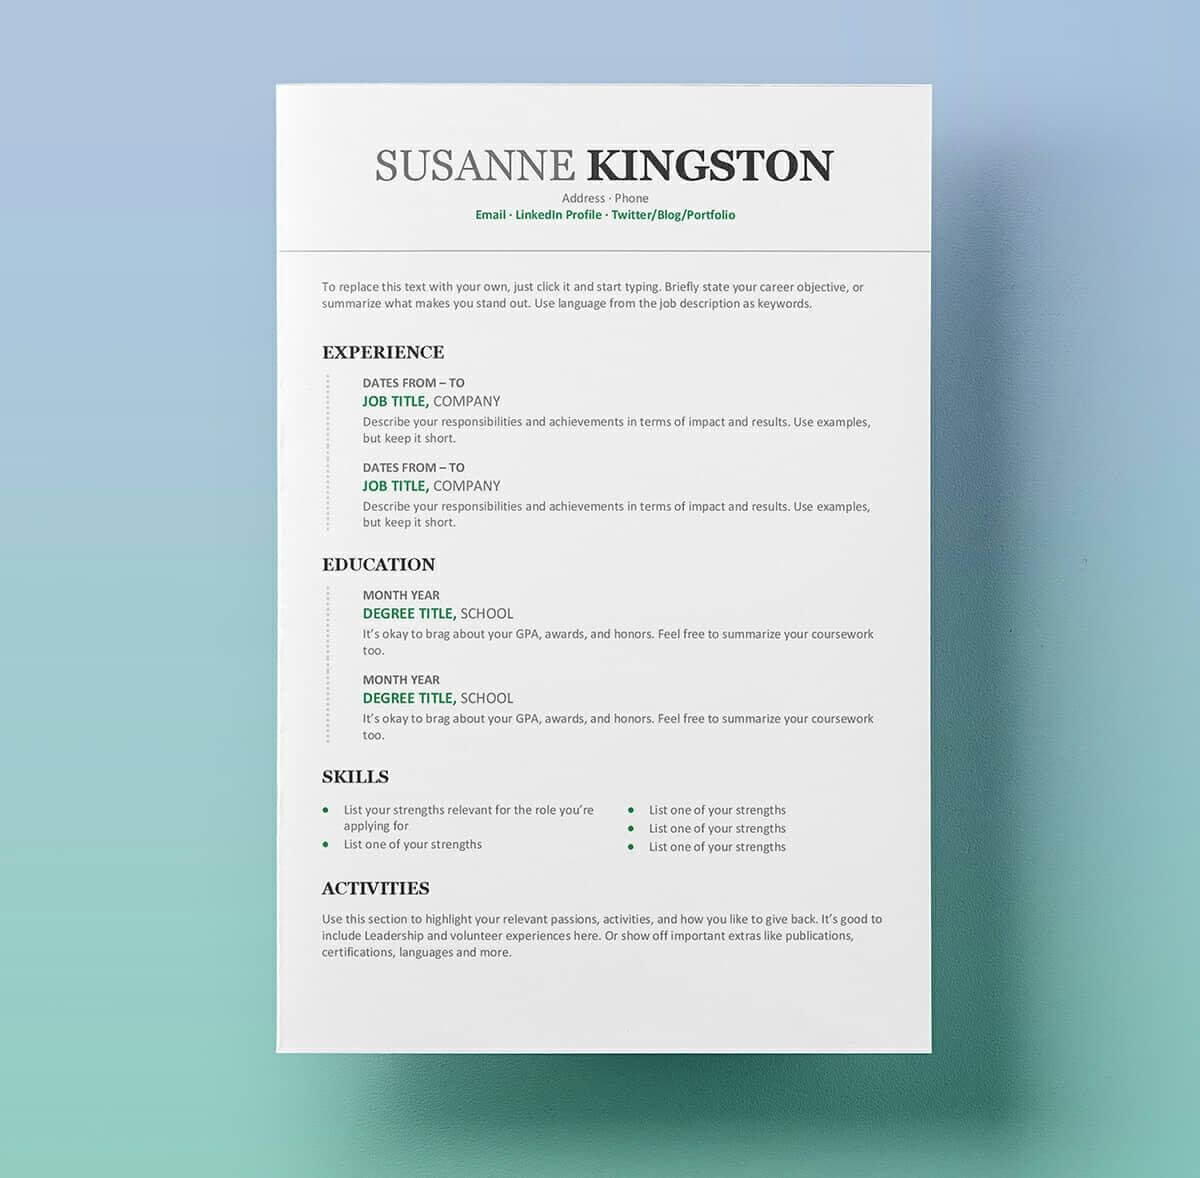 Free Resume Templates For Word: 15 Cv/resume Formats To Download Pertaining To How To Get A Resume Template On Word